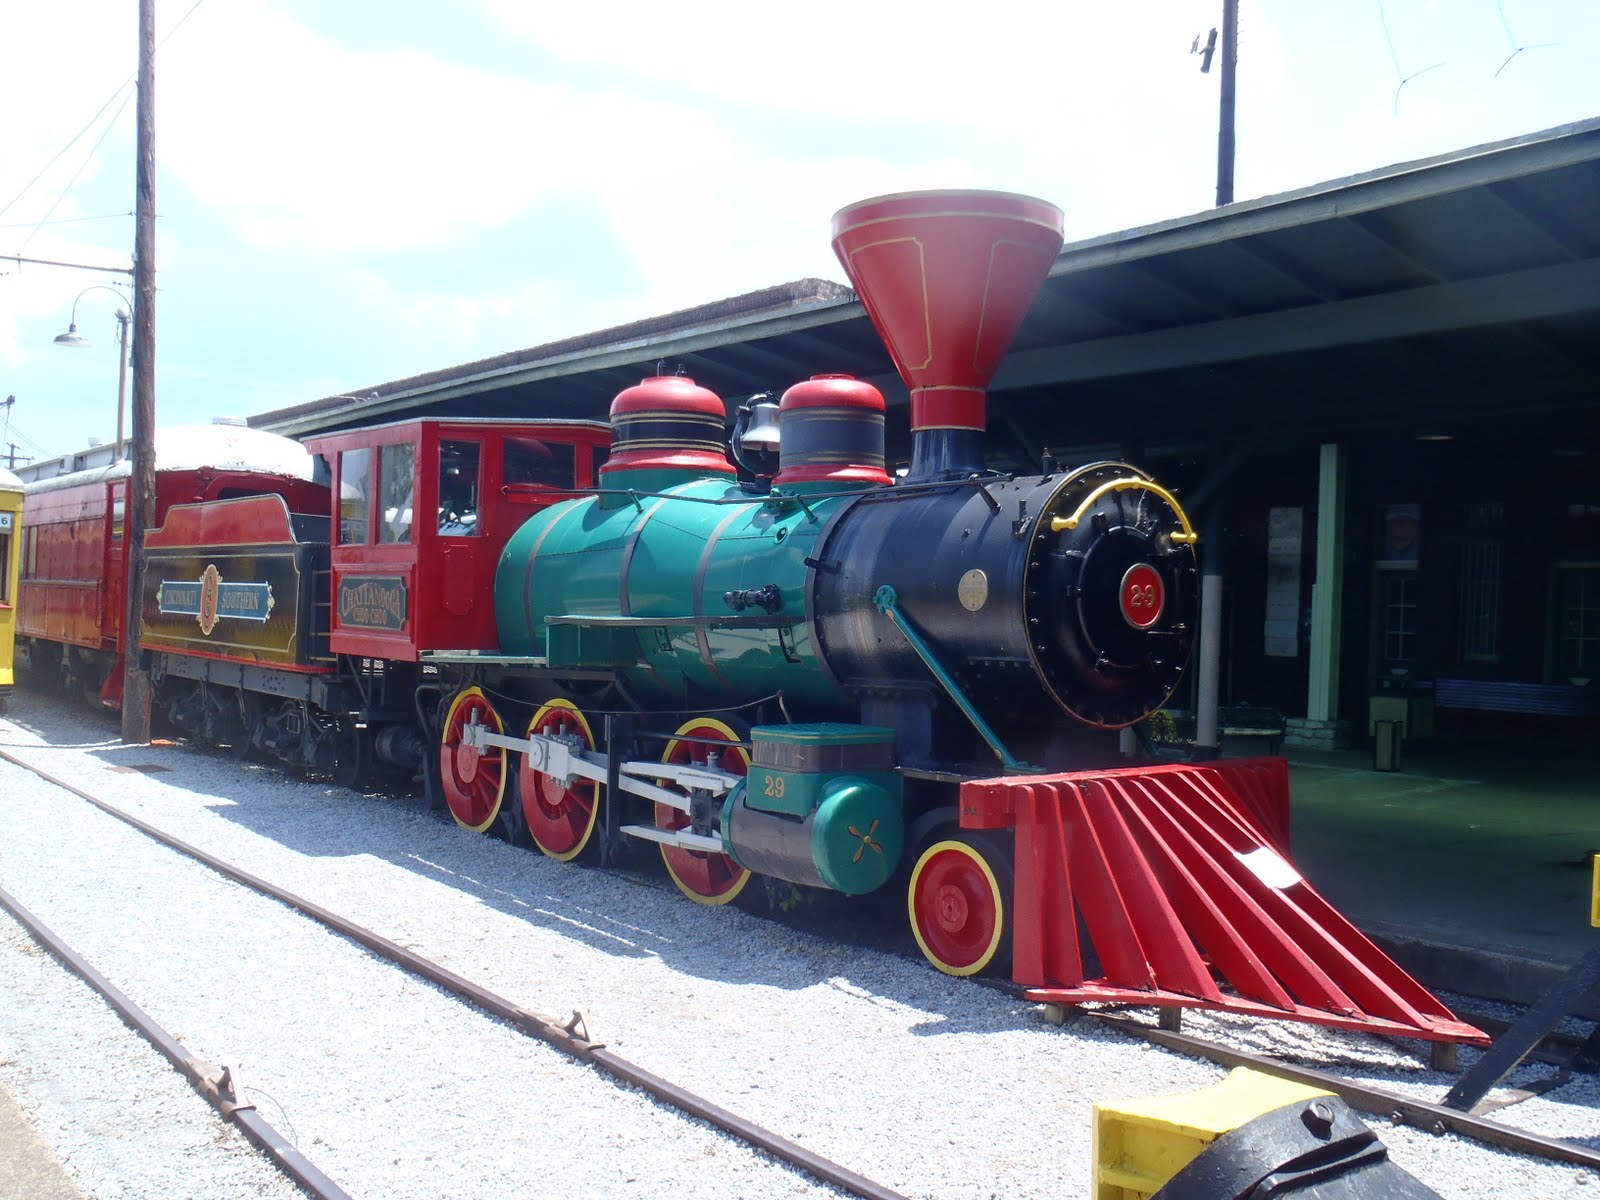 Trekking With Tide Hiker Chattanooga Choo Choo And More